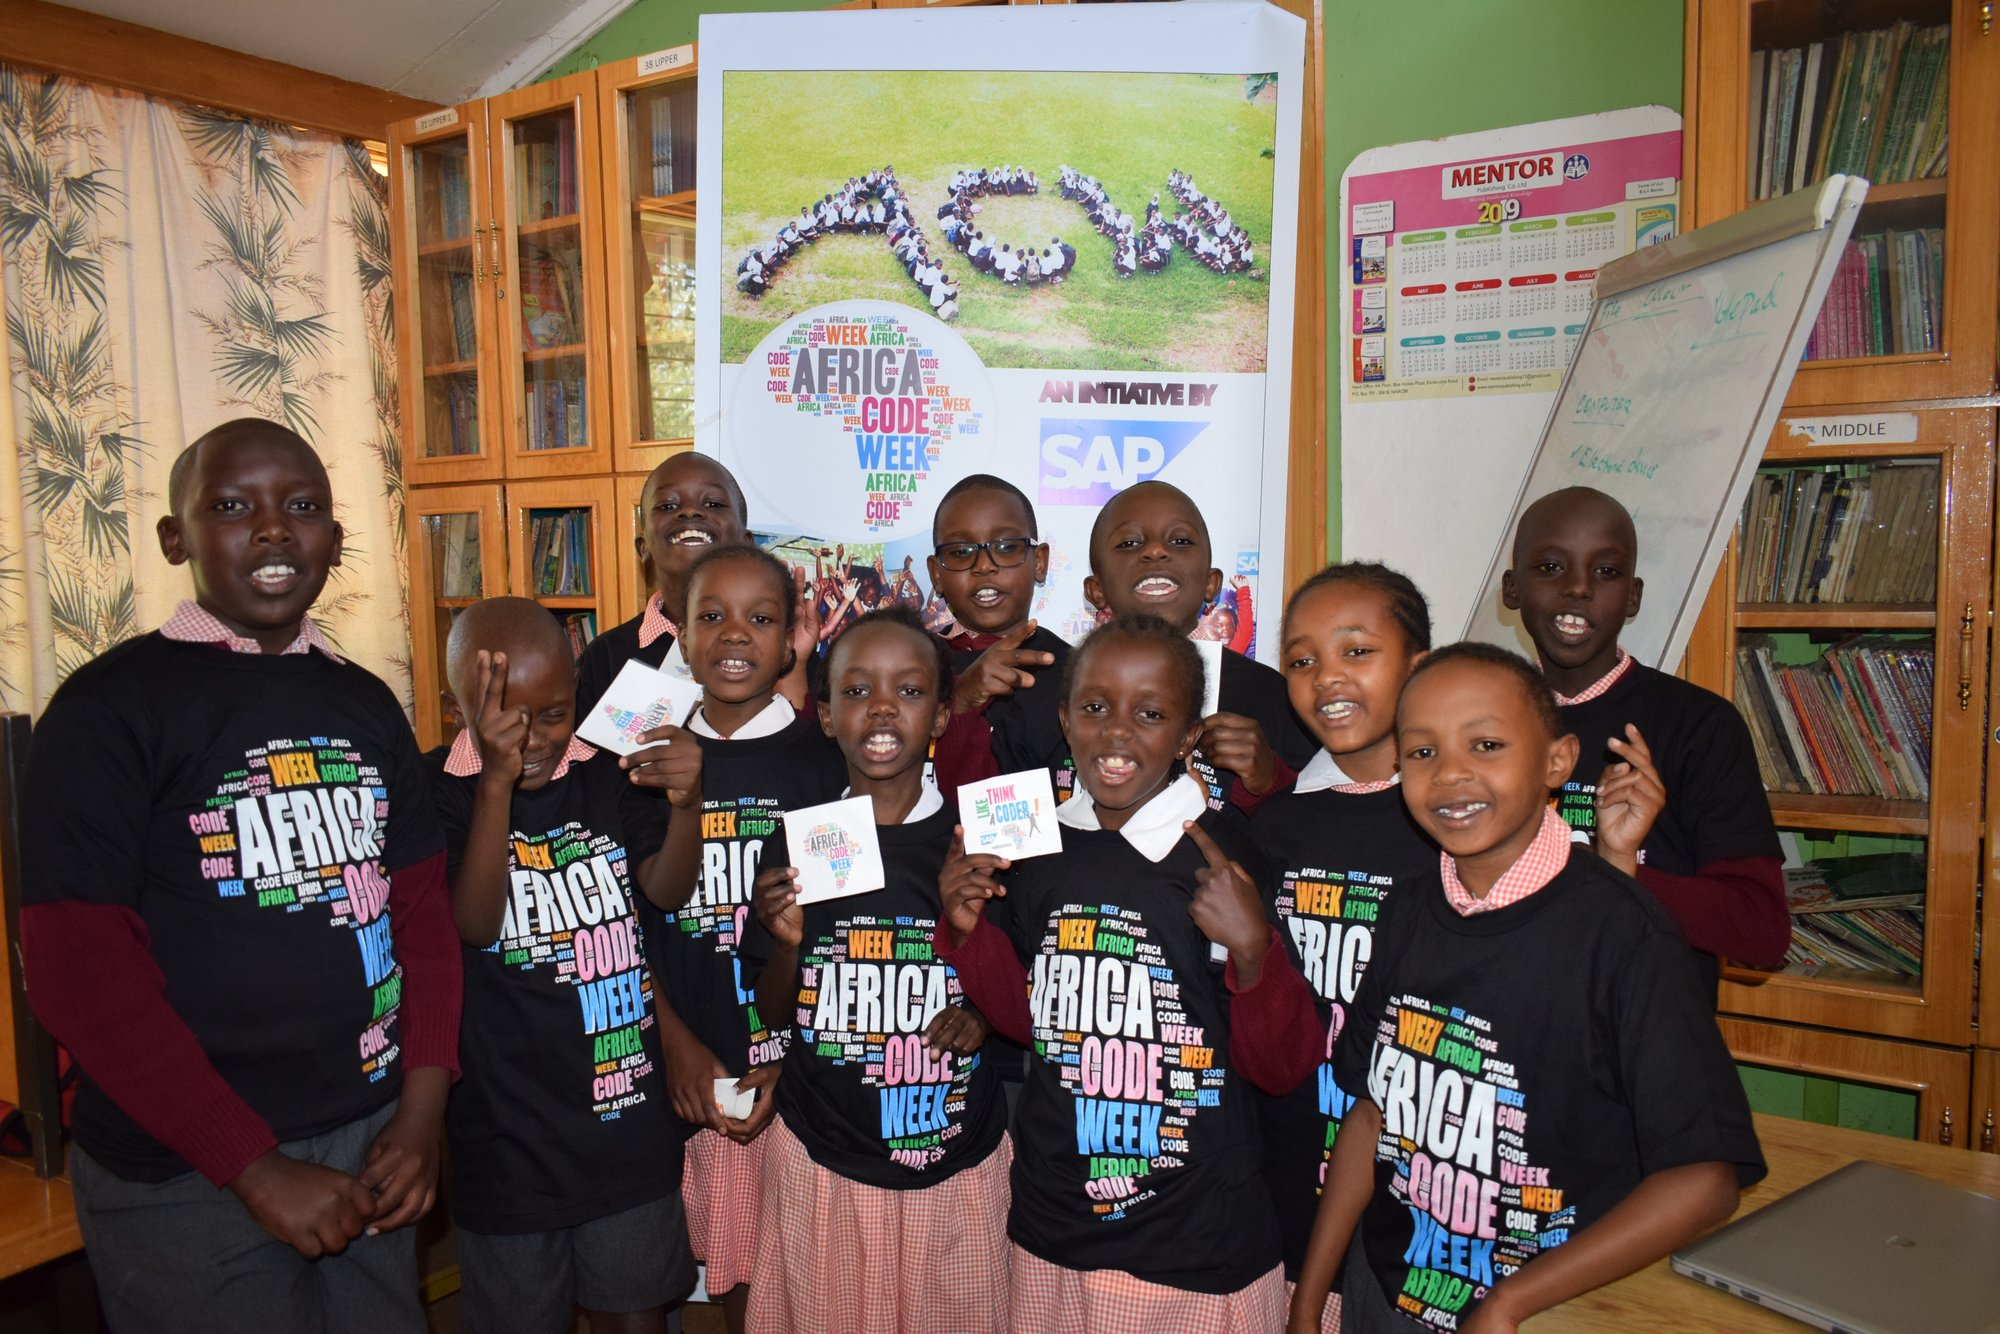 Europe and Africa code weeks: 136,000 students learn to code